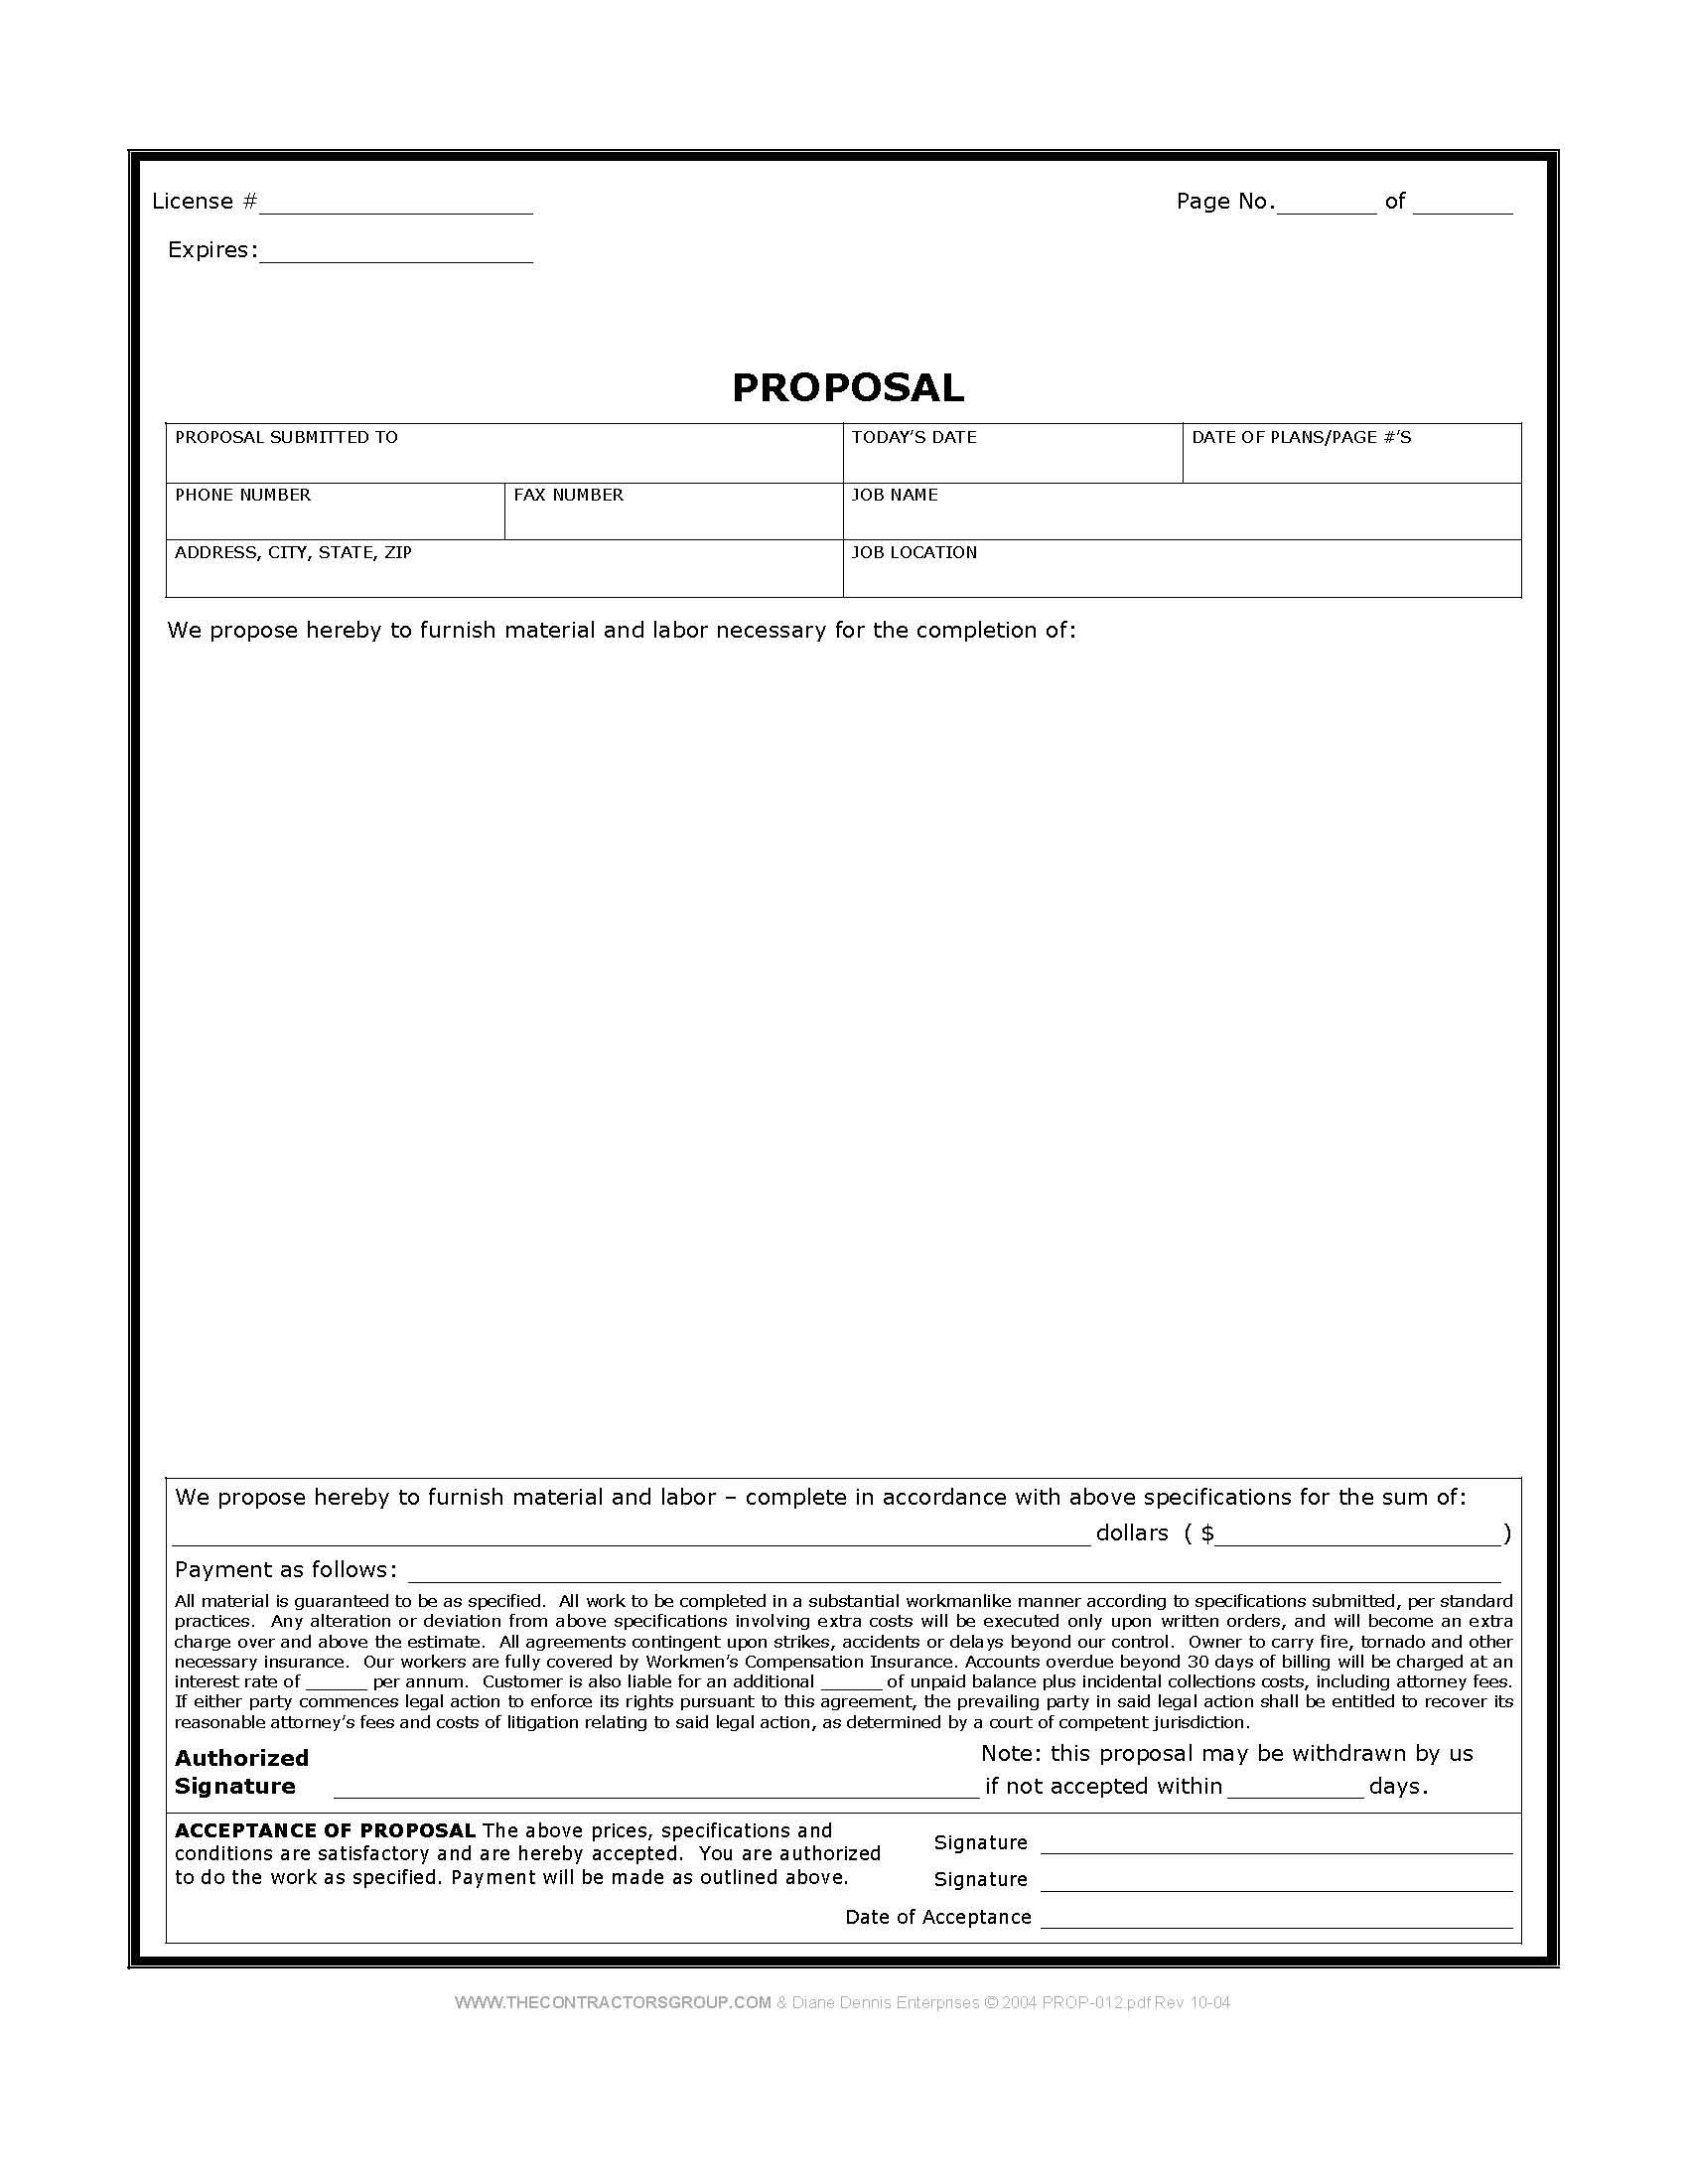 Free Print Contractor Proposal Forms | Construction Proposal Form - Free Printable Contractor Proposal Forms